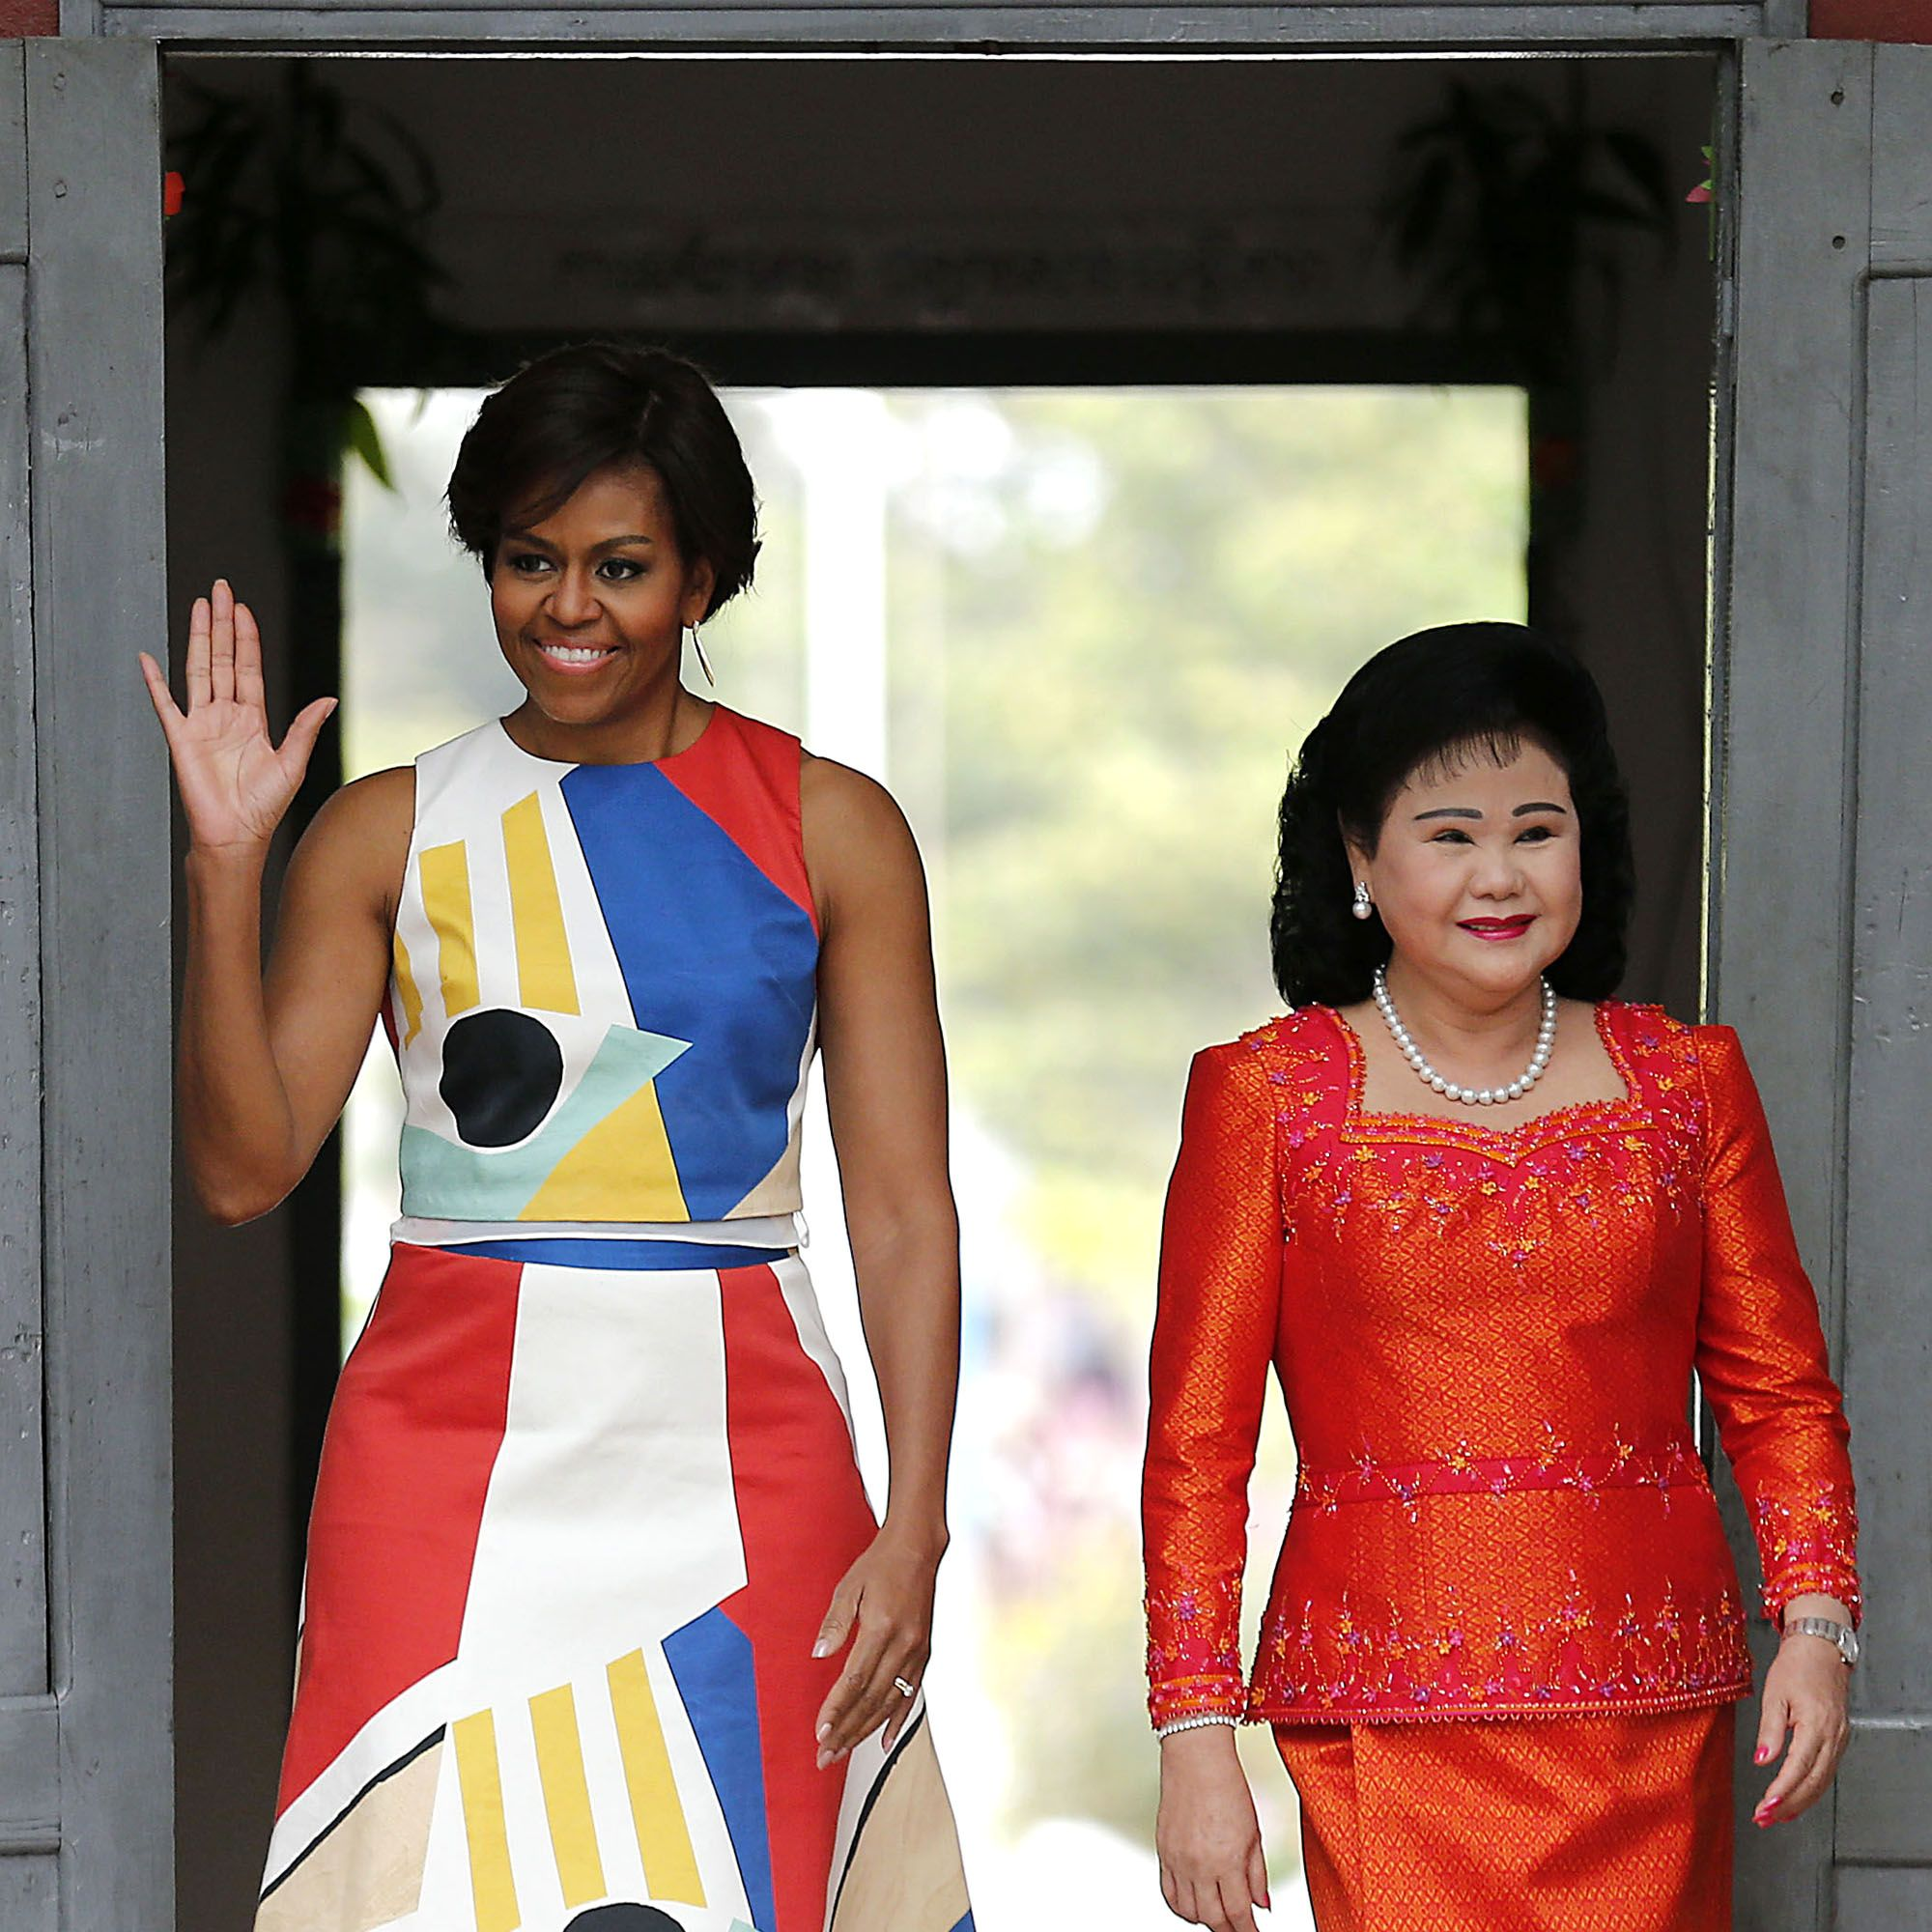 """U.S. first lady Michelle Obama, center left, and Bun Rany, the first lady of Cambodia, center right, arrive to meet with students at a local high school, Saturday, March 21, 2015, on the outskirts of Siem Reap, Cambodia. Mrs. Obama is in Cambodia to promote the education initiative """"Let Girls Learn,"""" which was launched to lift barriers that block more than 62 million girls around the world from attending school. (AP Photo/Wong Maye-E)"""